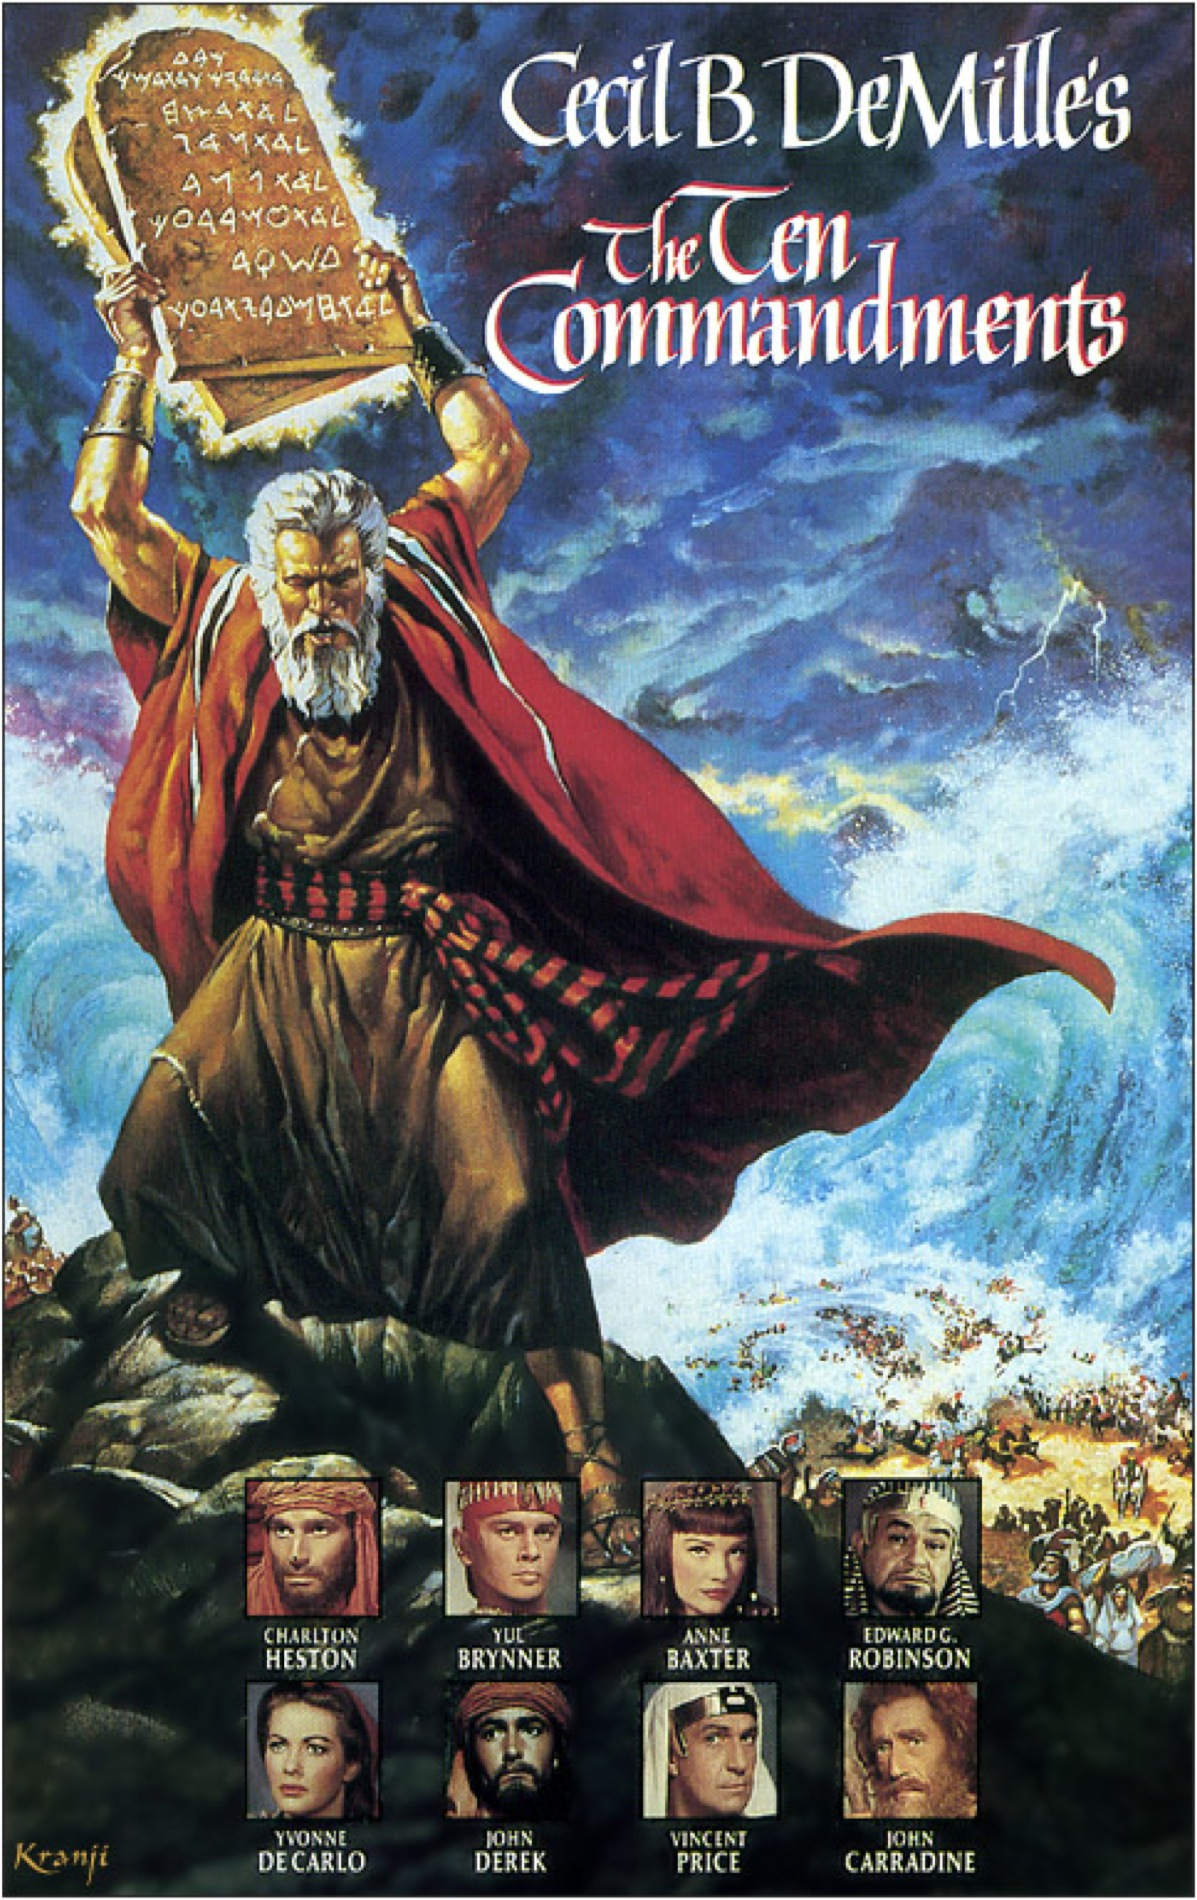 The Ten Commandments (1956) - Directed By: Cecil B DeMilleStarring: Charlton Heston, Yul Brynner, Anne BaxterRated: GRunning Time: 3 h 40 mTMM: 4 out of 5 StarsStrengths: Production Design, Effects, ActingWeaknesses: Length, Dialogue, Also Acting